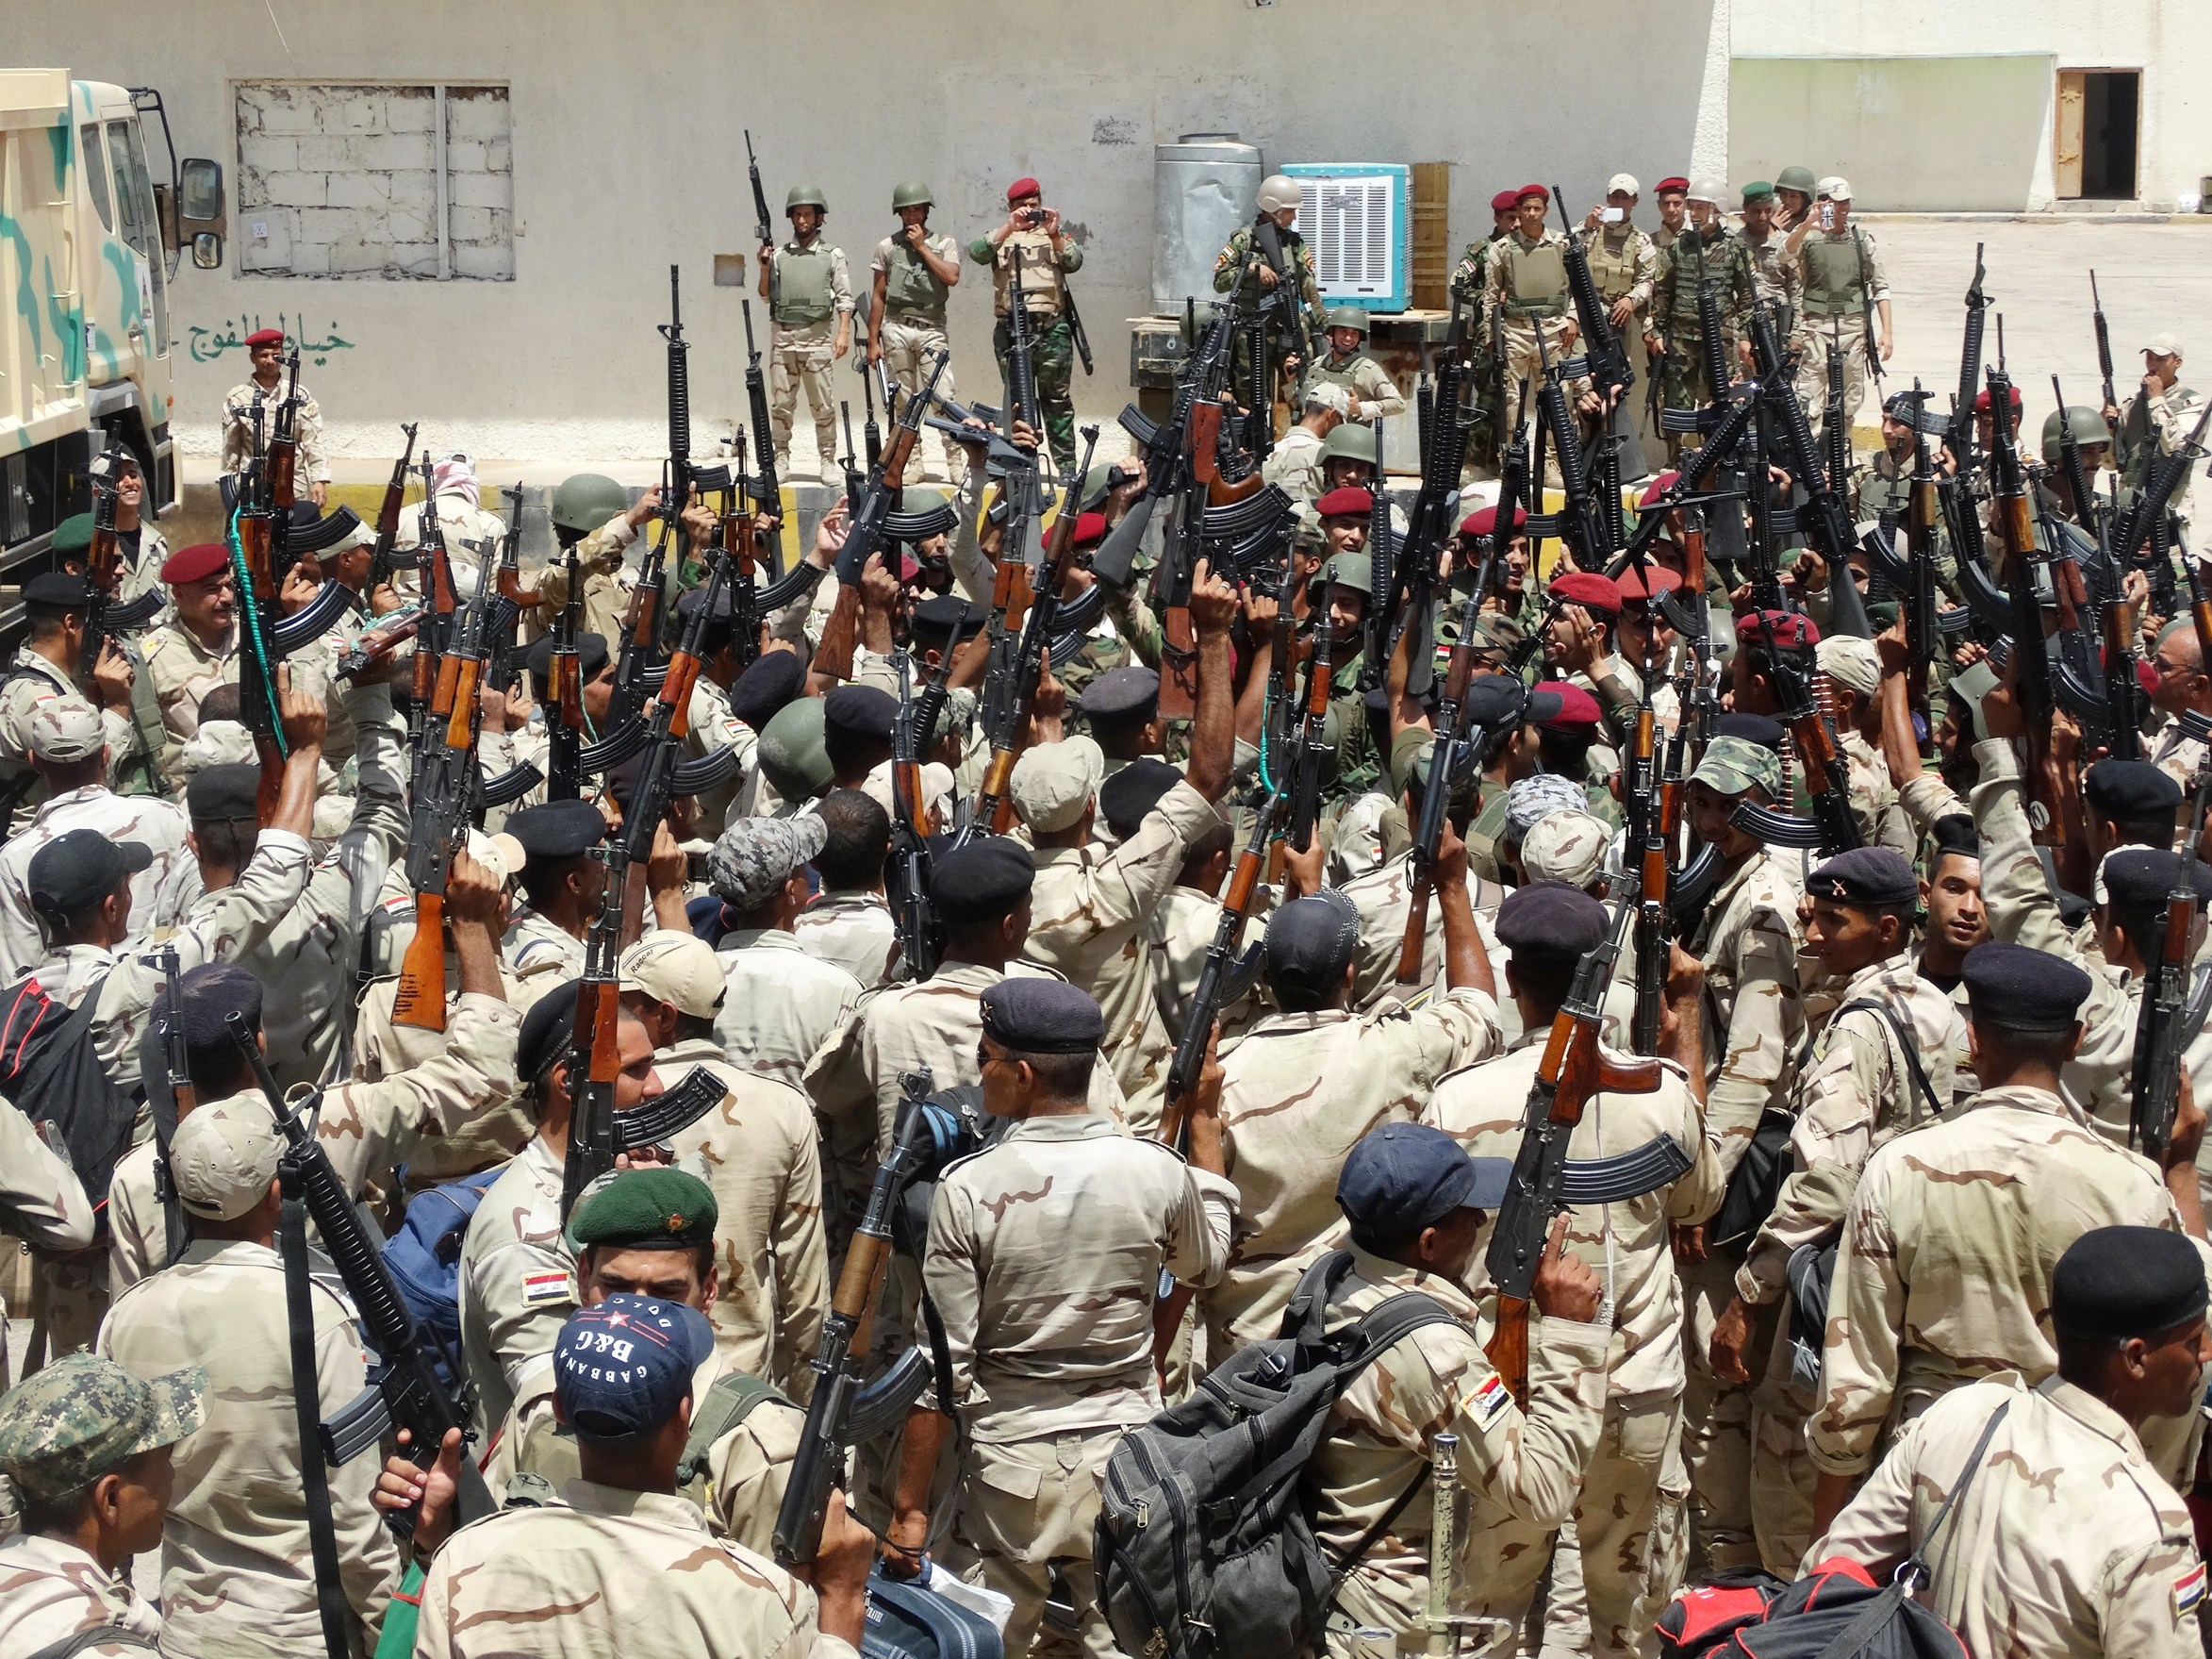 Iraqi troops raise up their weapons as they gather upon their arrival to support the Sunni anti-Al-Qaeda militia Sahwa (Awakening) in its fight against anti-government militants, including from the jihadist Islamic State of Iraq and the Levant (ISIL) in the Anbar province on June 21, 2014 in the city of Ramadi, west of the capital Baghdad.   (AFP PHOTO / STR)